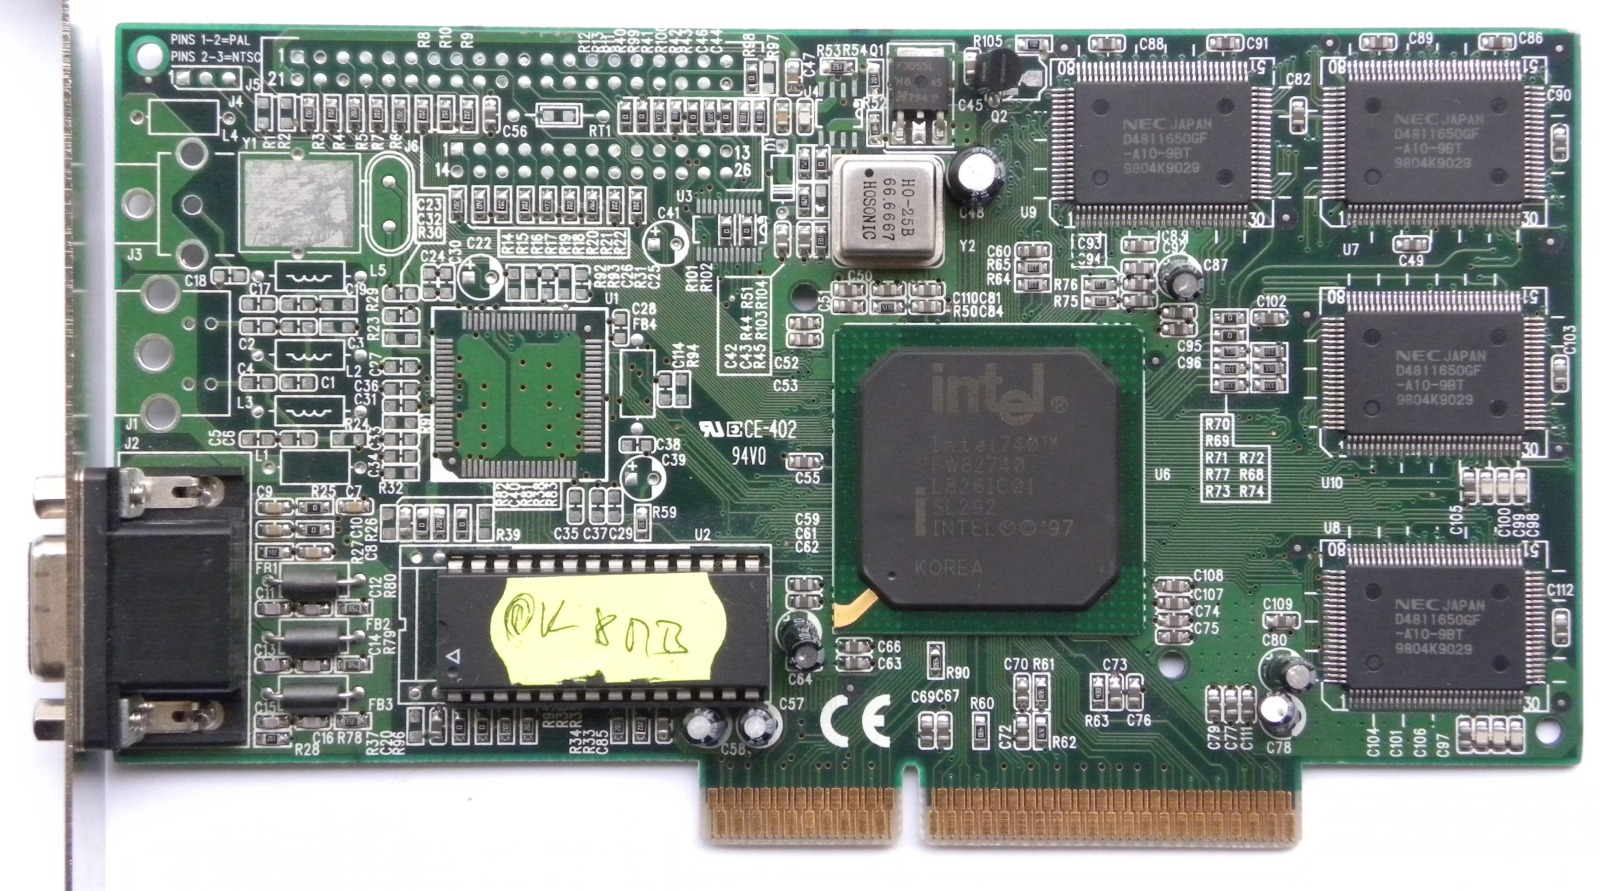 Intel 740 agp driver for windows download.